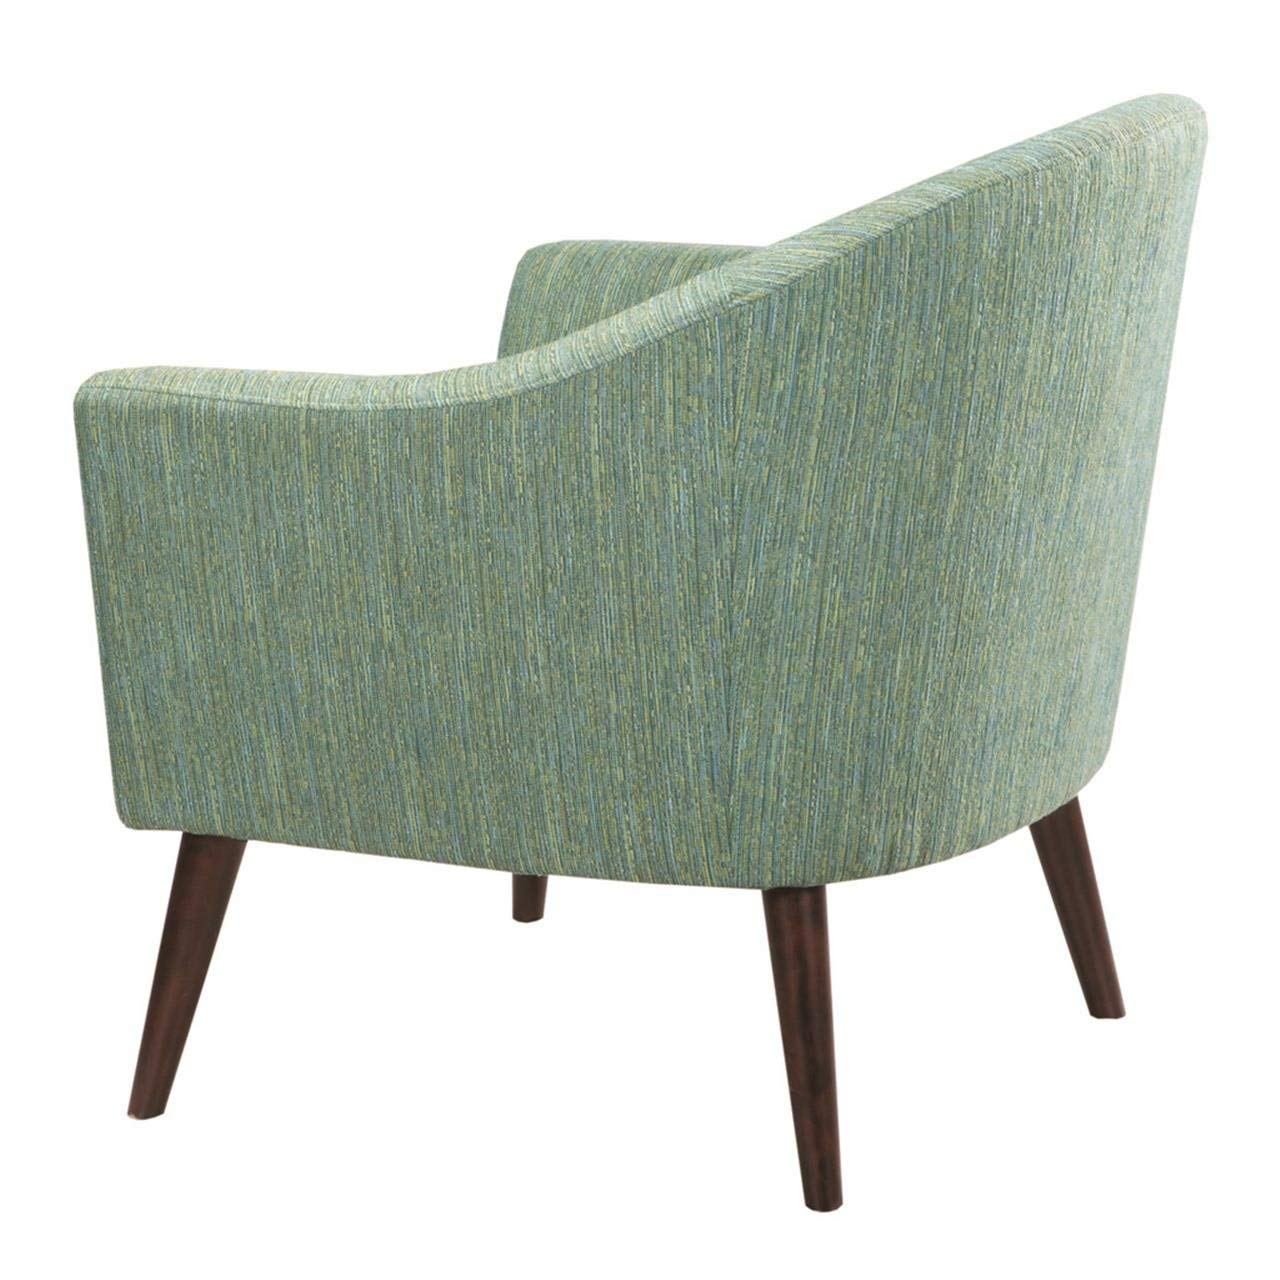 Bon Amazon.com: Madison Park Grayson Accent Chairs   Hardwood, Birch, Textured  Fabric Living Room Chairs   Pale Green, Modern Classic Style Living Room  Sofa ...